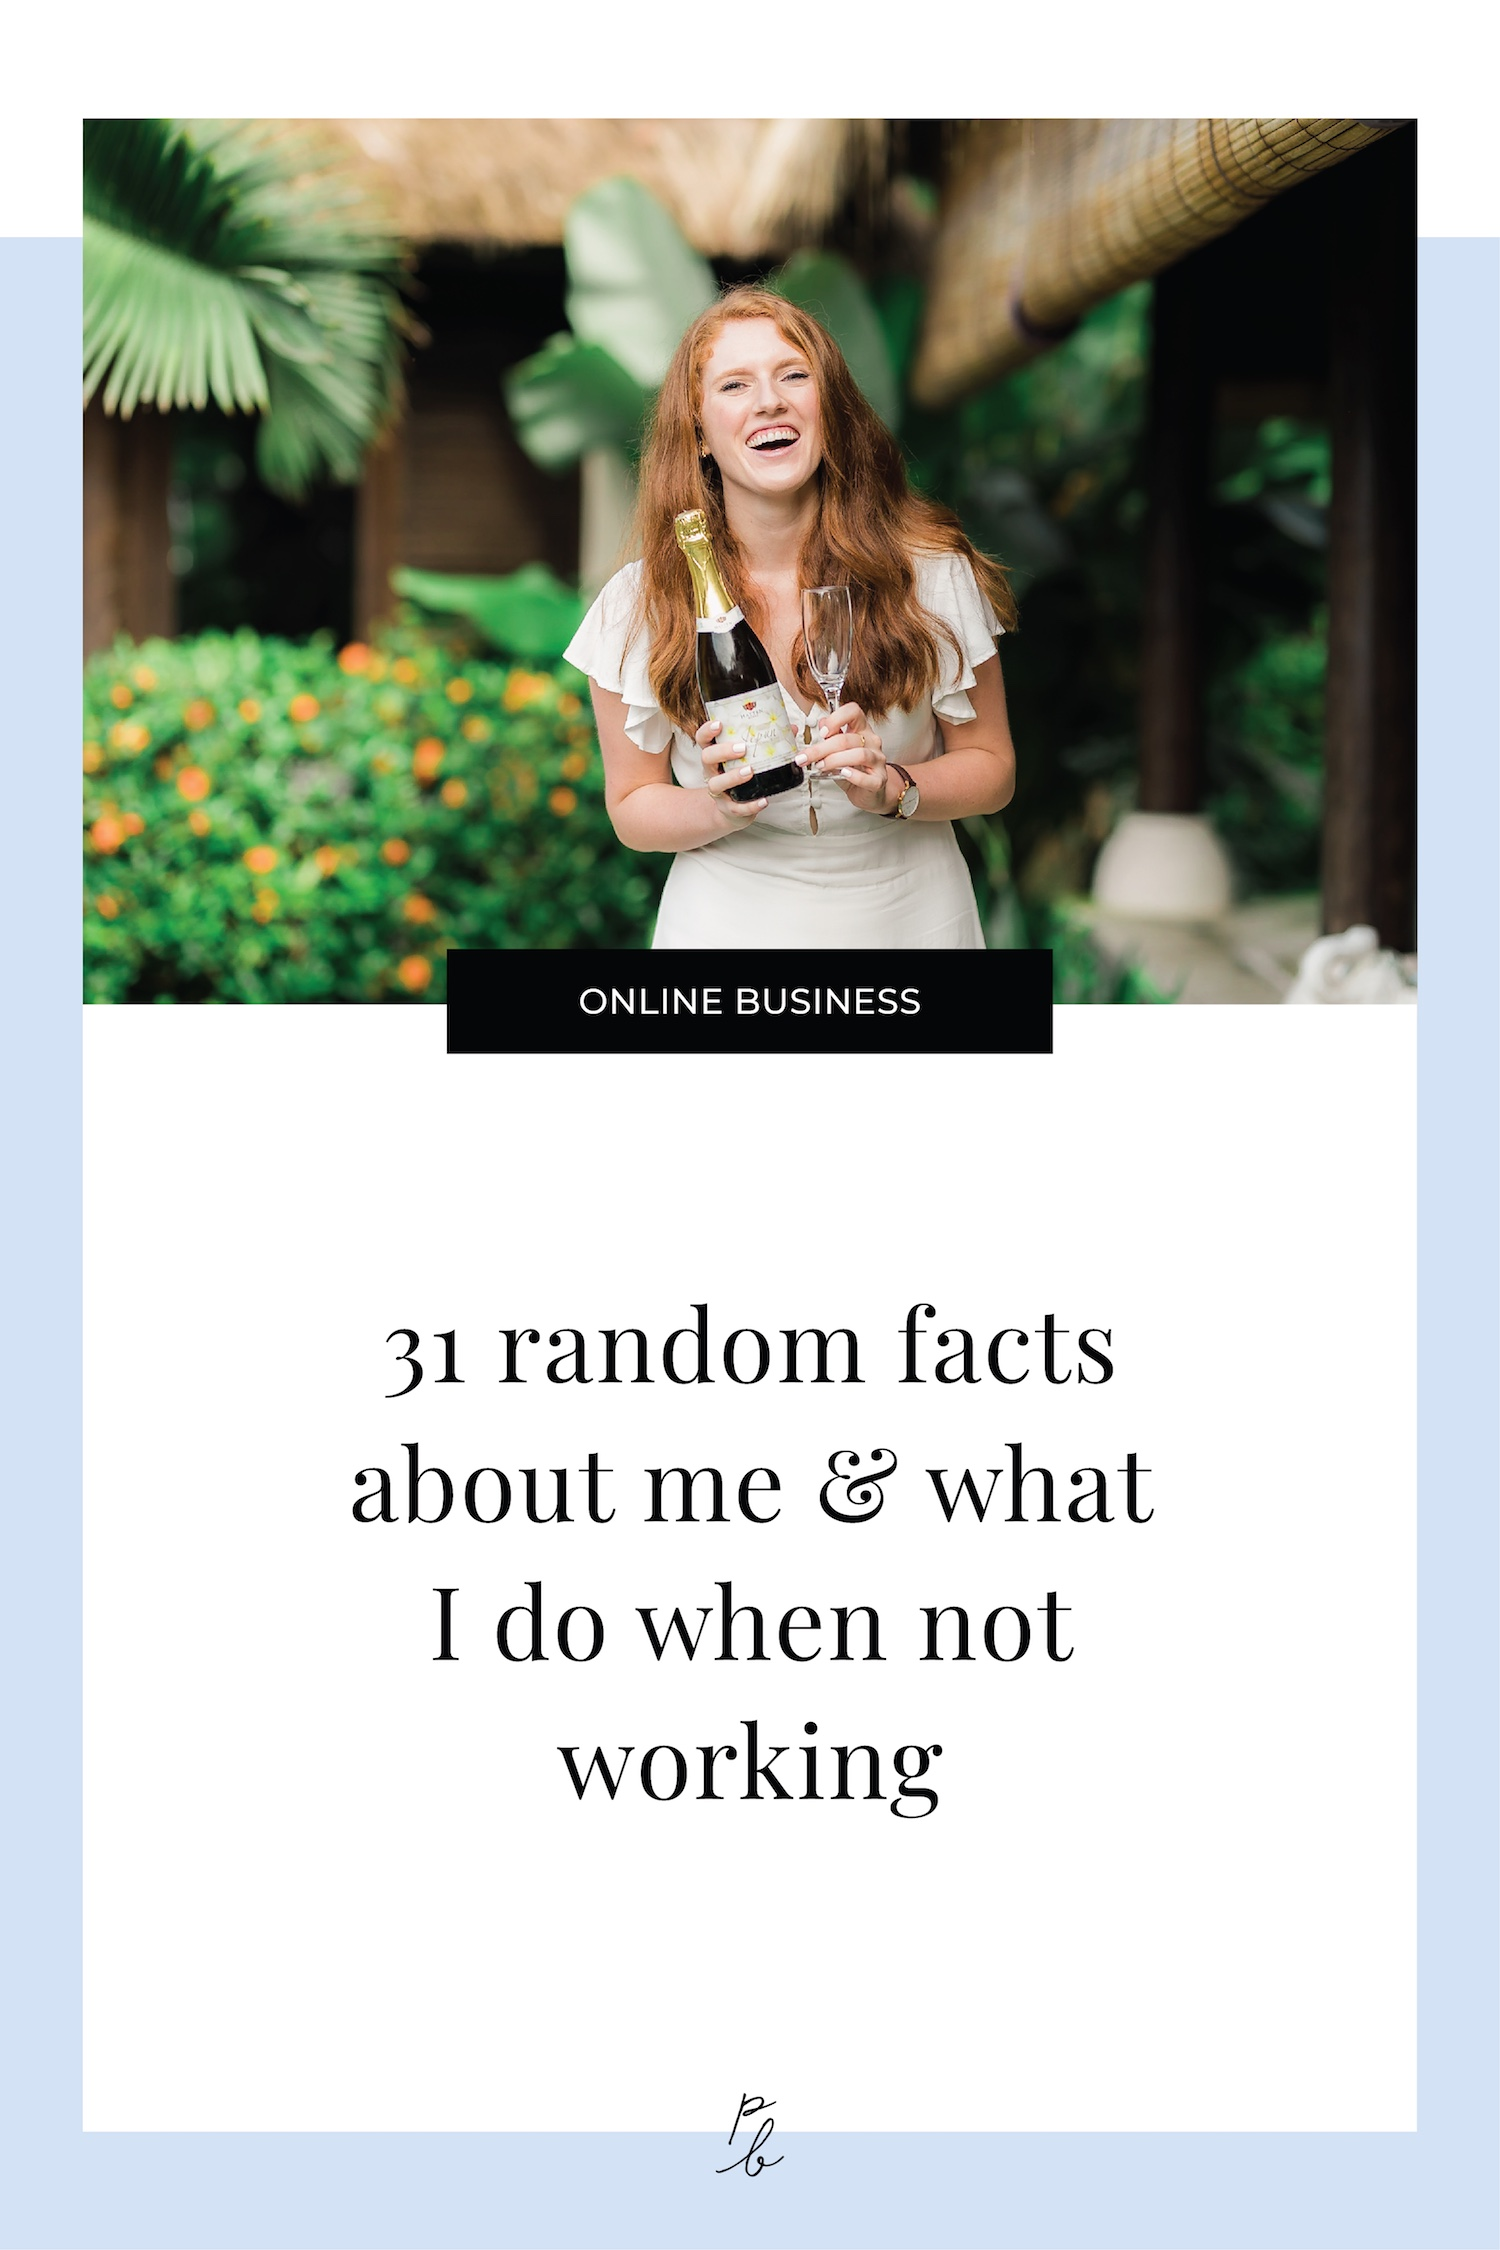 31 random facts about me and what I do when not working.jpeg